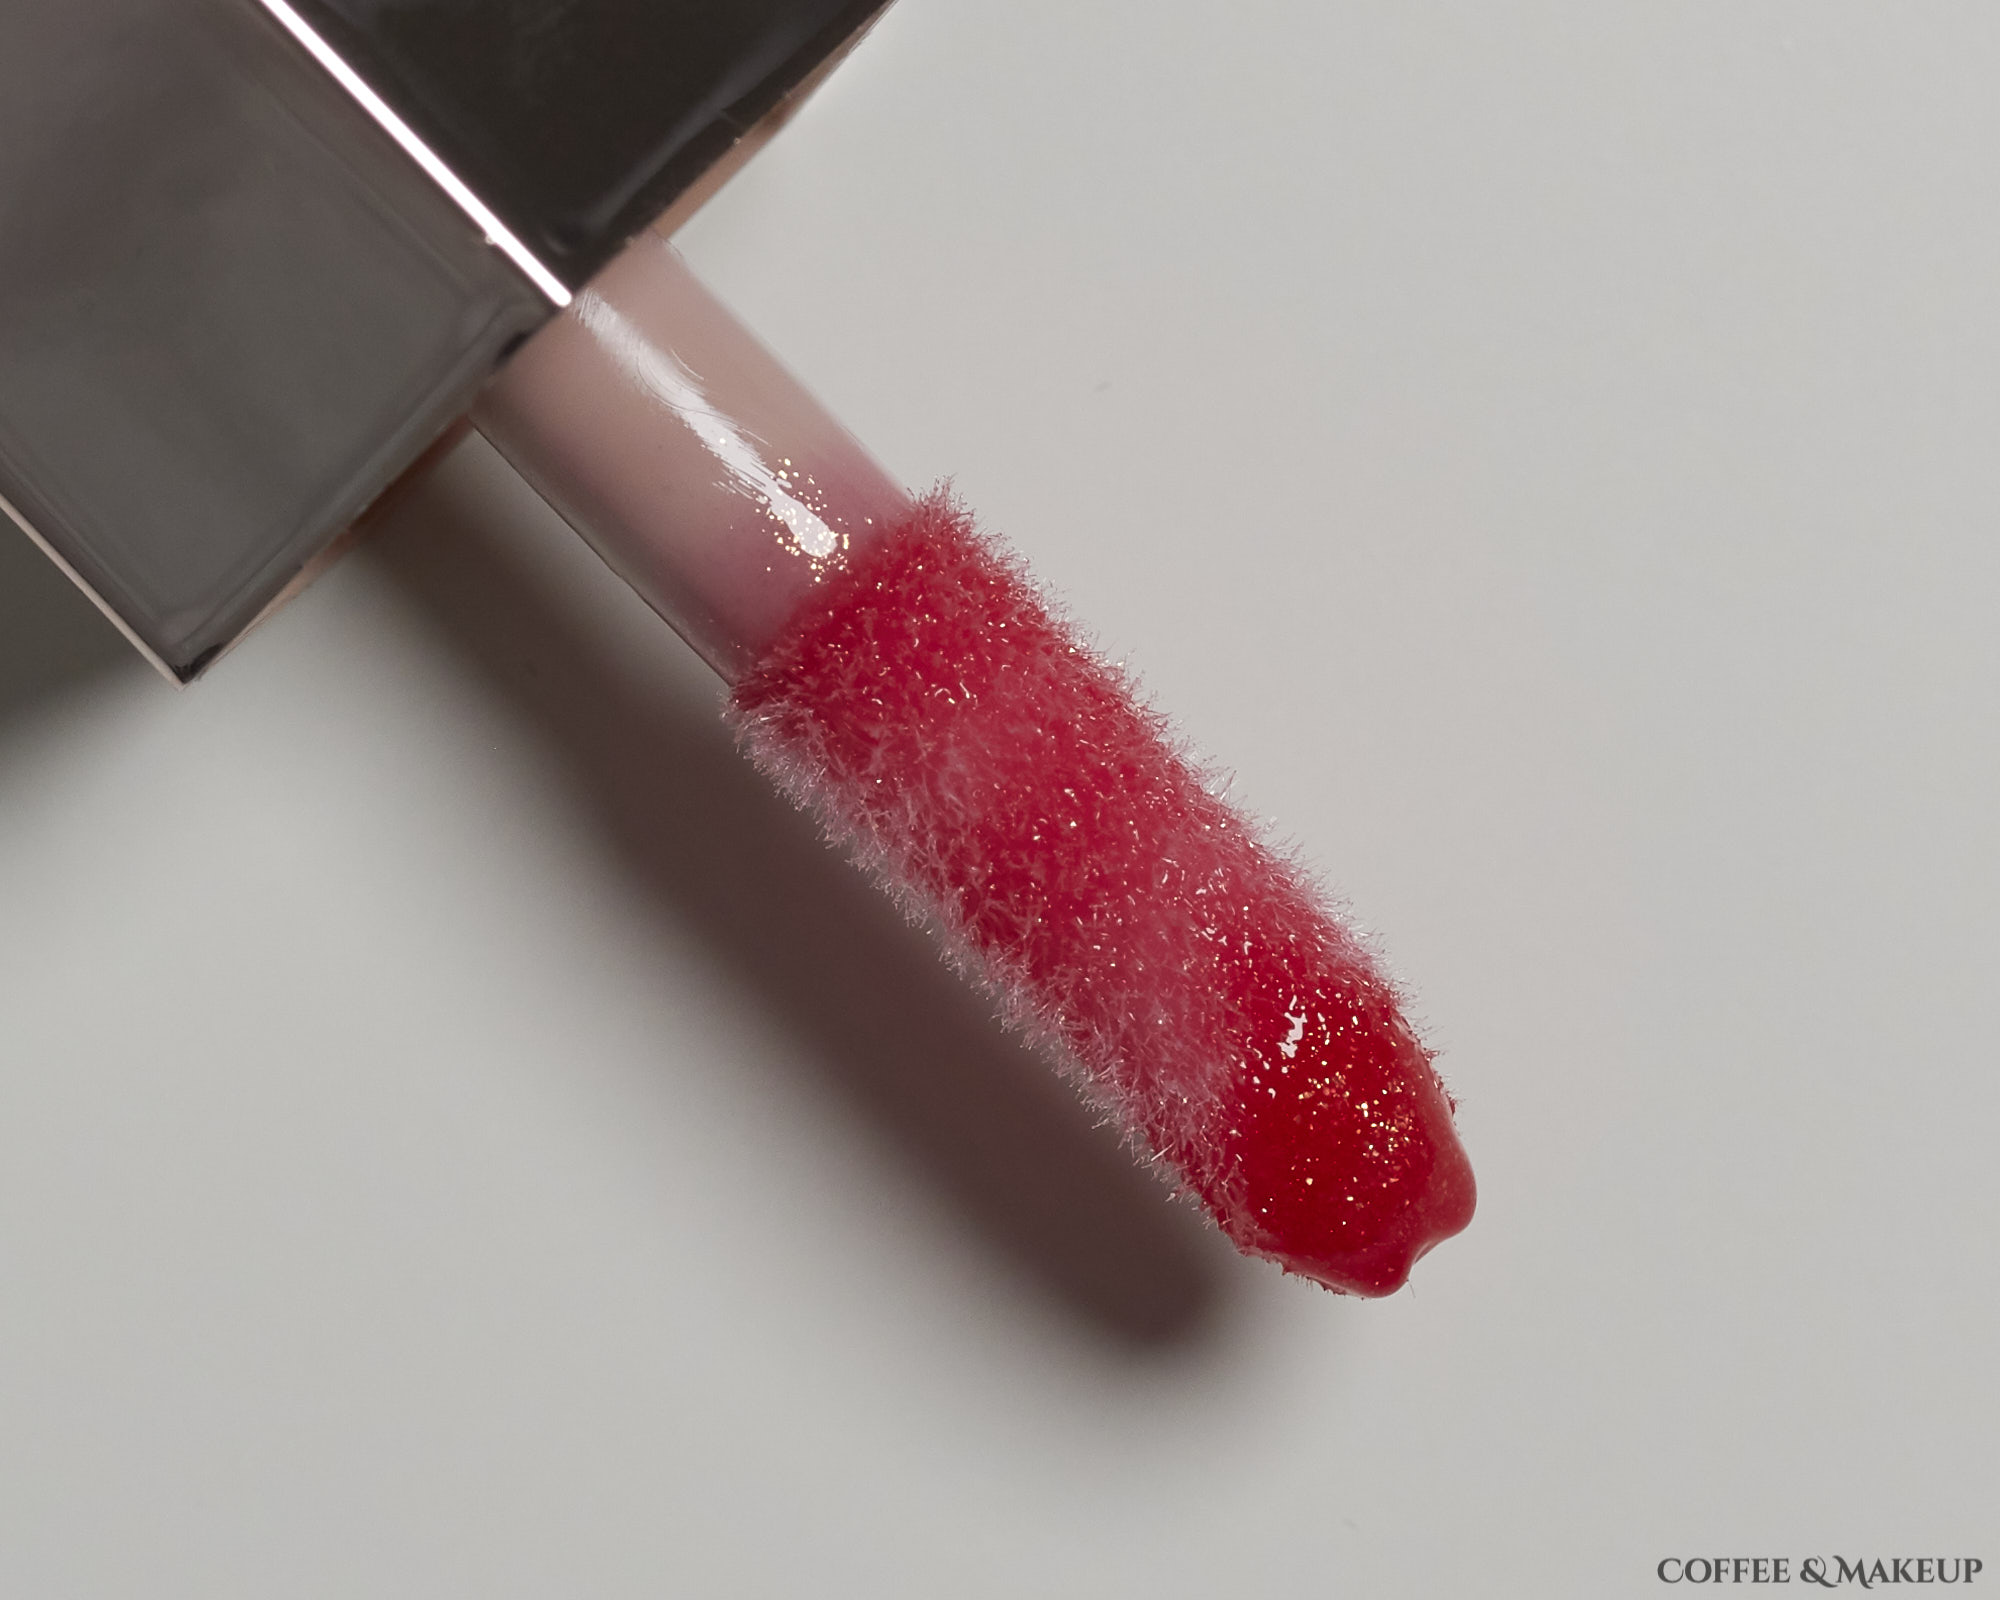 Cheeky | Fenty Beauty Gloss Bomb